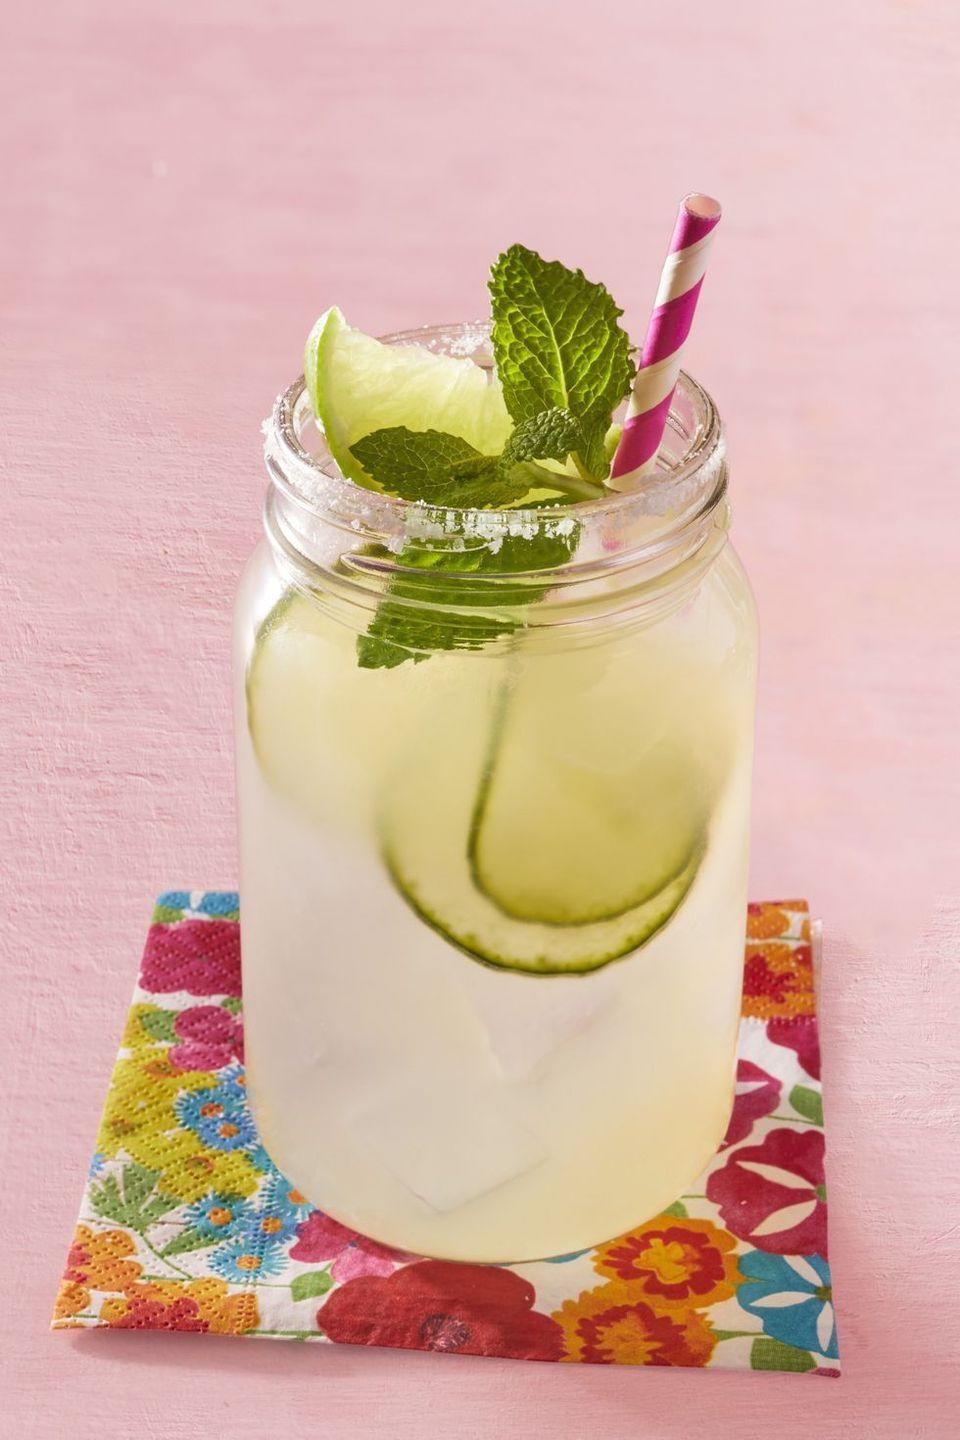 """<p>It's hard to go wrong with a classic margarita. This one is served in a mason jar for a cute, springtime look. </p><p><em><strong>Get the recipe at <a href=""""https://www.thepioneerwoman.com/food-cooking/recipes/a32303003/margareeta-recipe/"""" rel=""""nofollow noopener"""" target=""""_blank"""" data-ylk=""""slk:The Pioneer Woman."""" class=""""link rapid-noclick-resp"""">The Pioneer Woman.</a></strong></em></p>"""